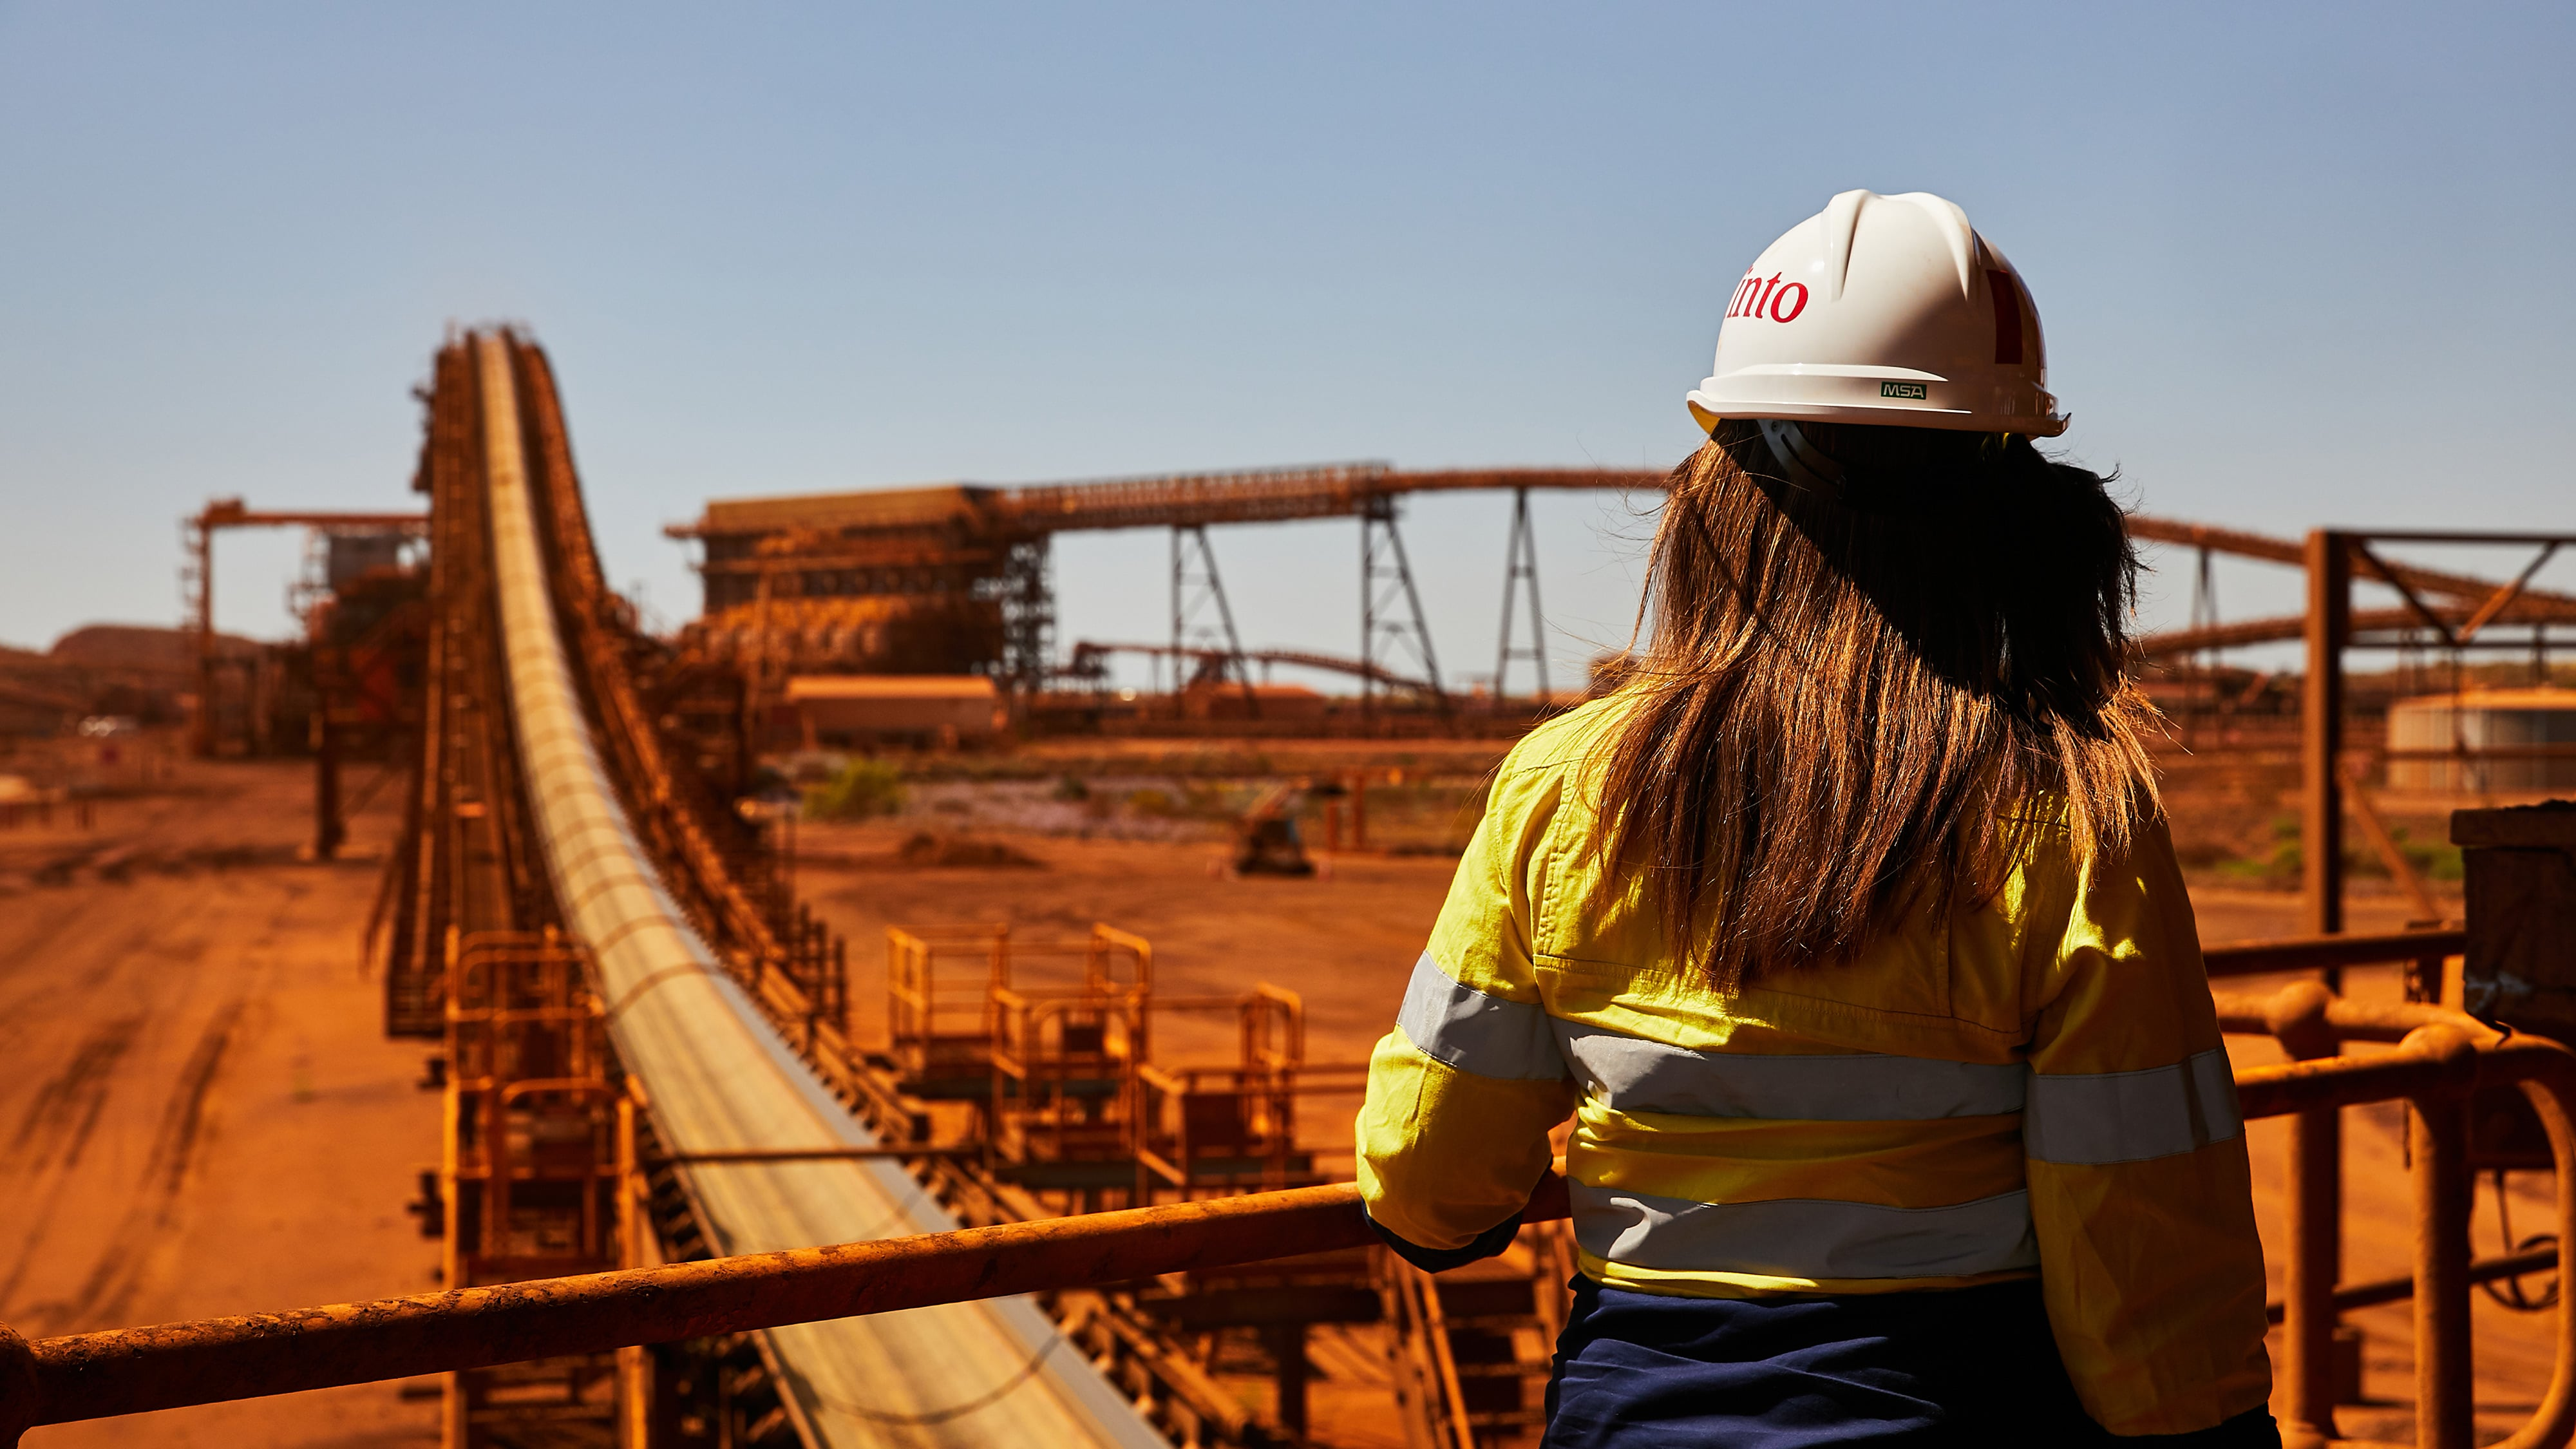 Employee at Cape Lambert, Pilbara